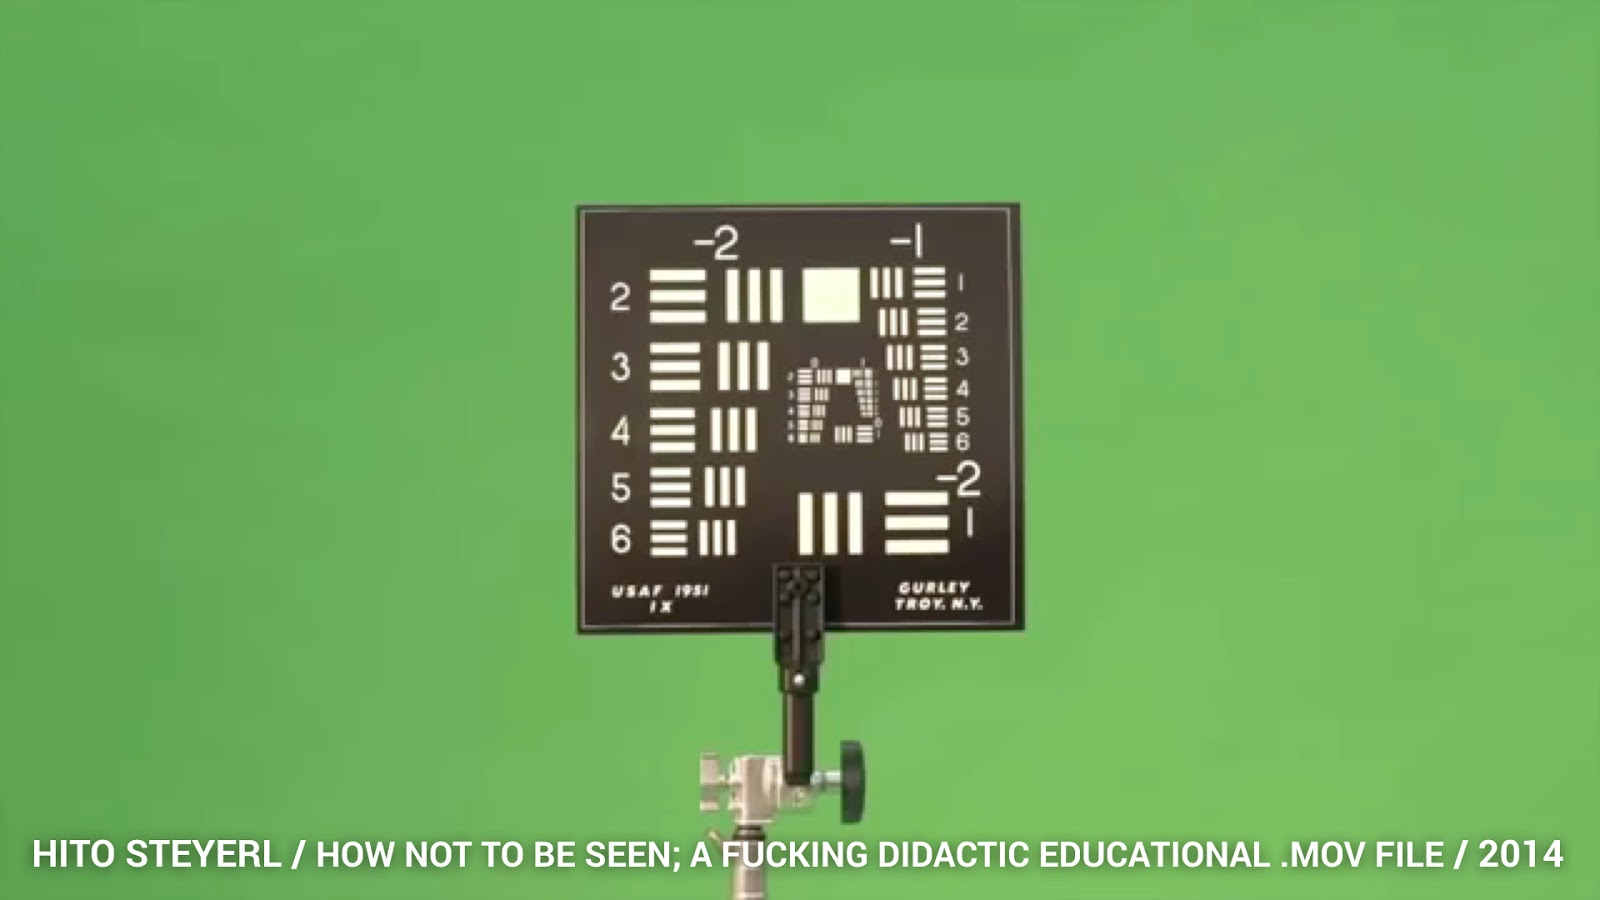 More radically, the artist Hito Steyerl, in her 2013 video work, How Not to be Seen: A Fucking Didactic Educational .MOV File highlights some of the ...